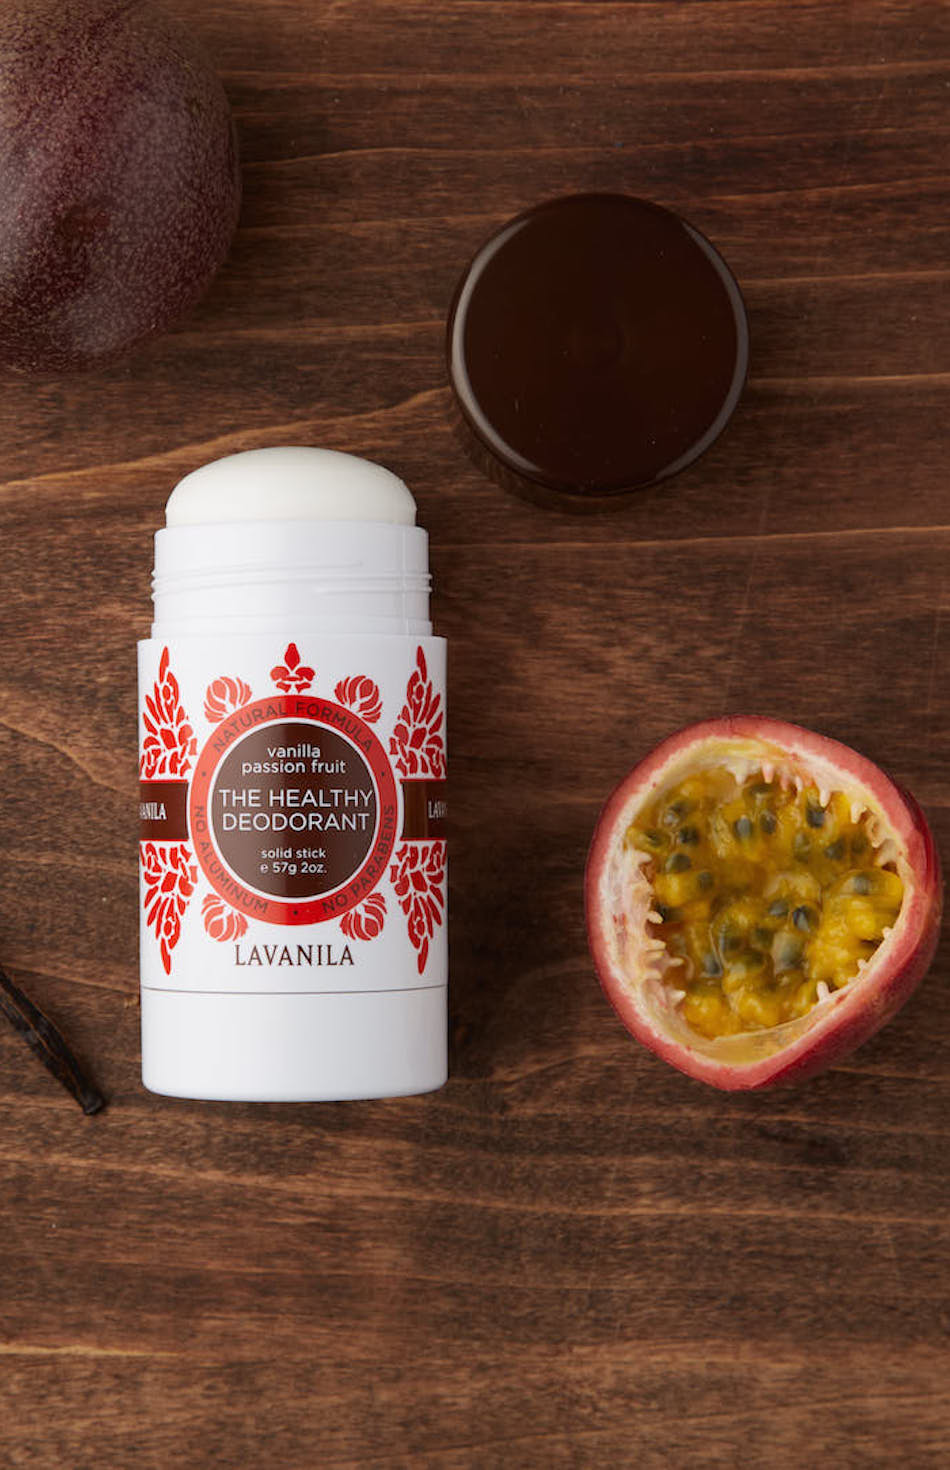 The Healthy Deodorant Vanilla Passion Fruit